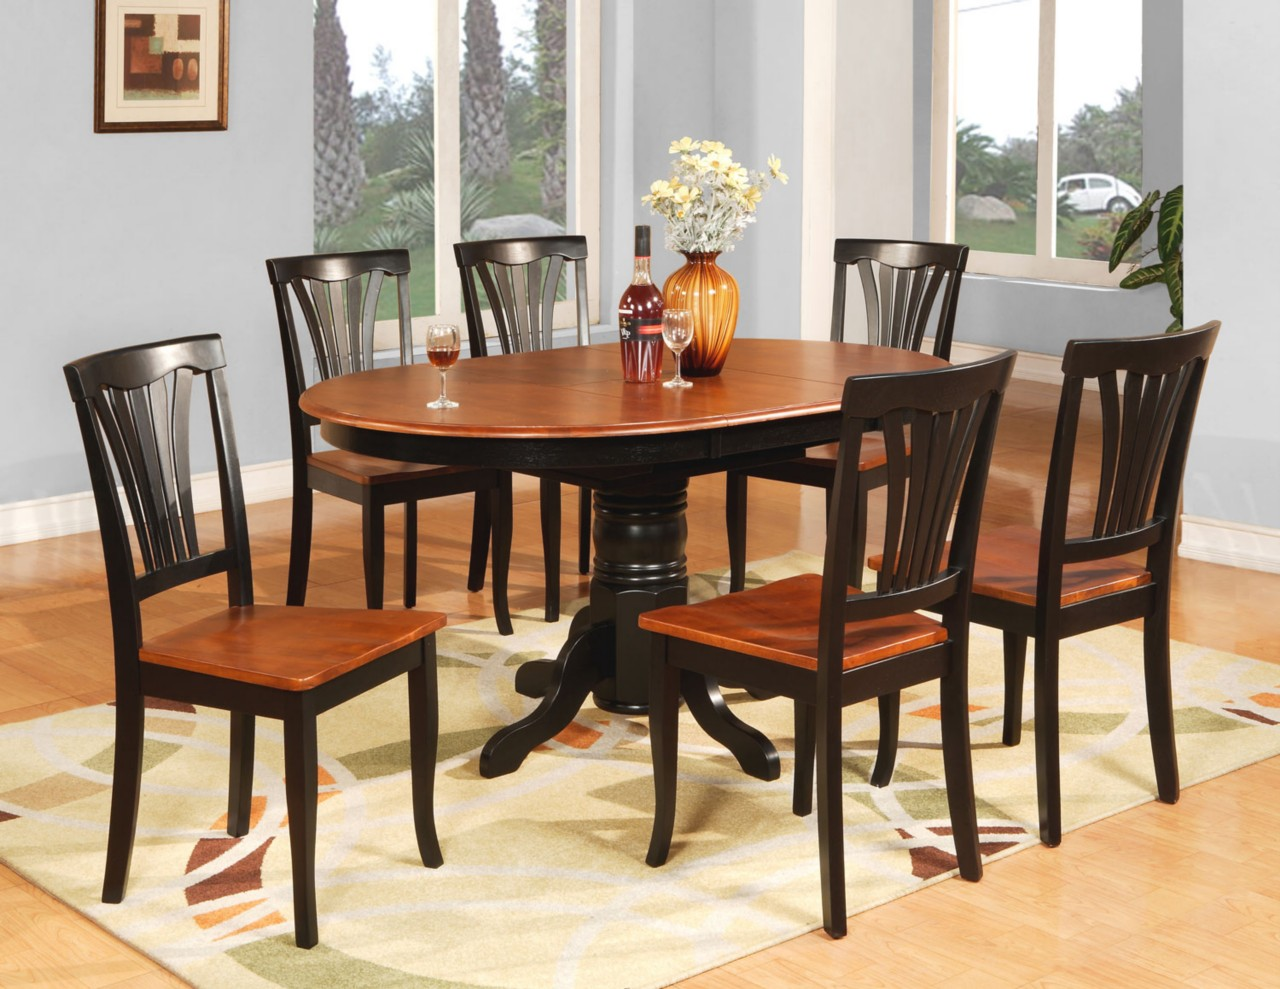 7 pc oval dinette kitchen dining room table 6 chairs ebay. Black Bedroom Furniture Sets. Home Design Ideas